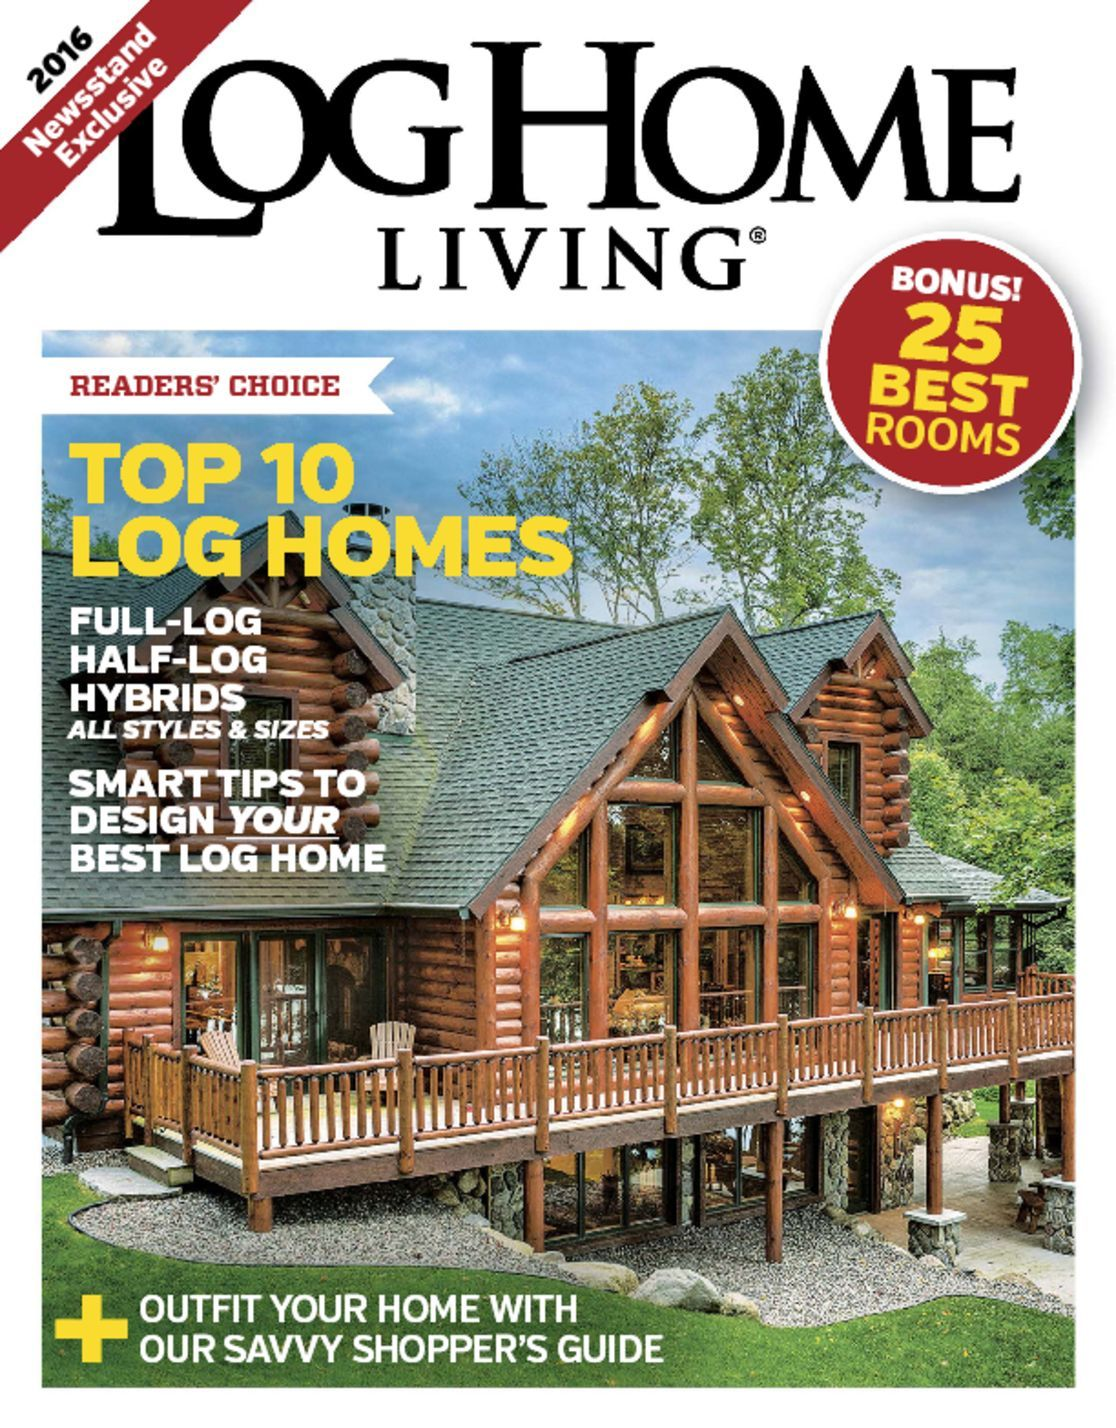 Log home living annual buyers guide magazine digital for Log homes magazine